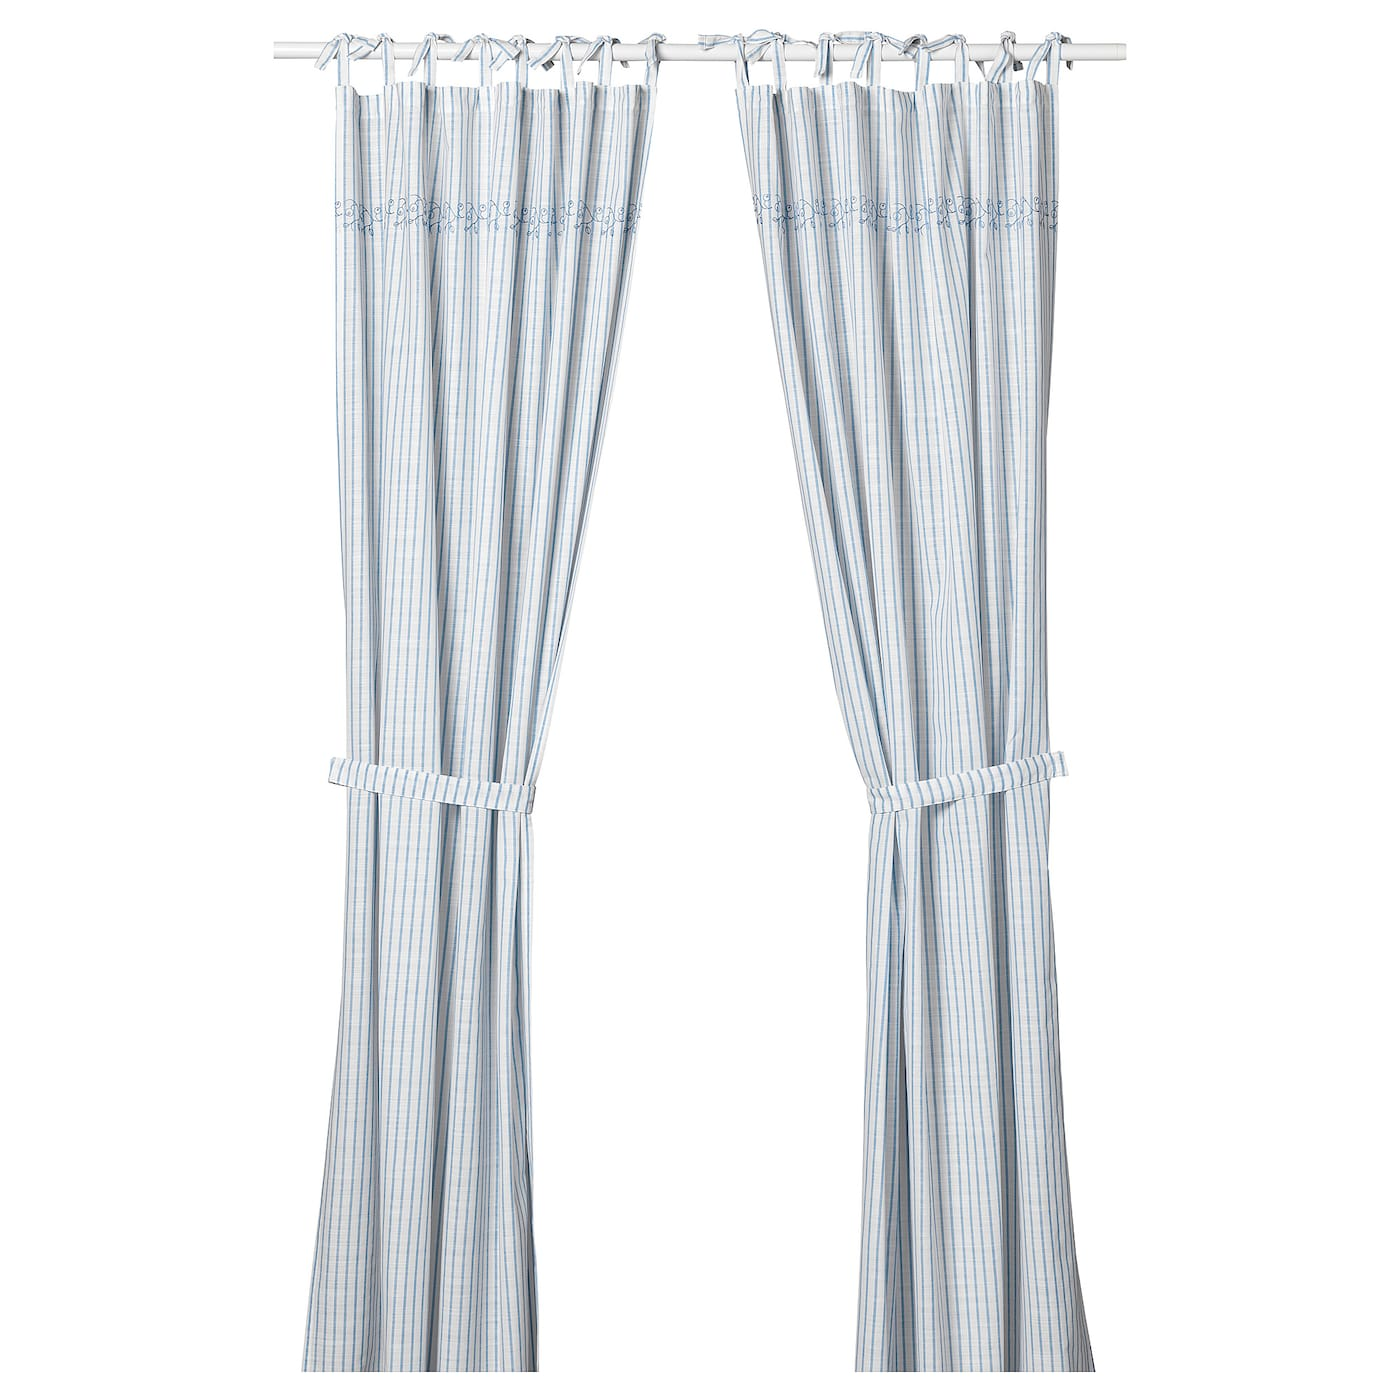 IKEA GULSPARV curtains with tie-backs, 1 pair Easy to keep clean; machine wash hot (60°C).